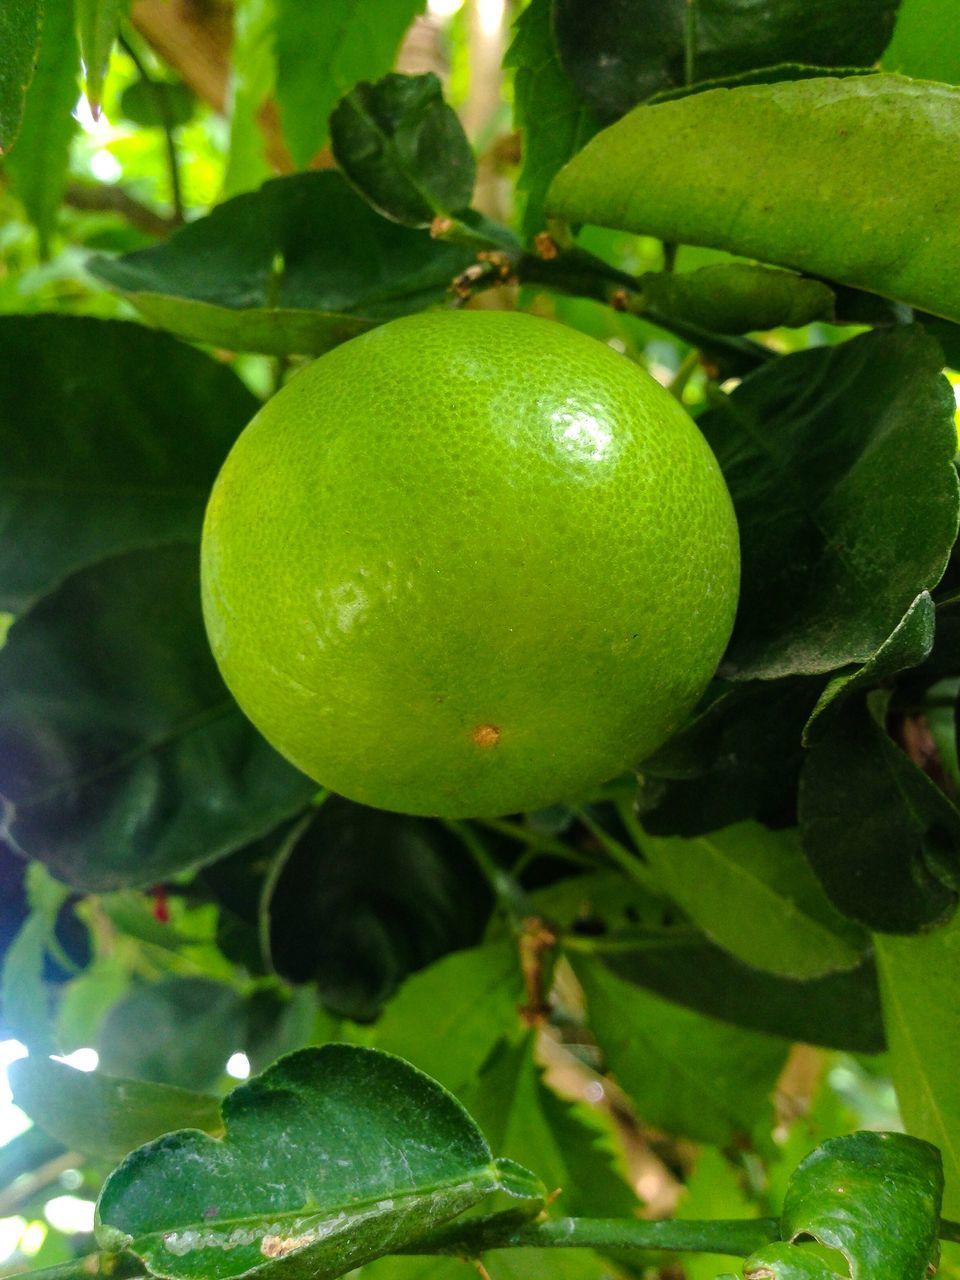 CLOSE-UP OF GREEN FRUIT TREE